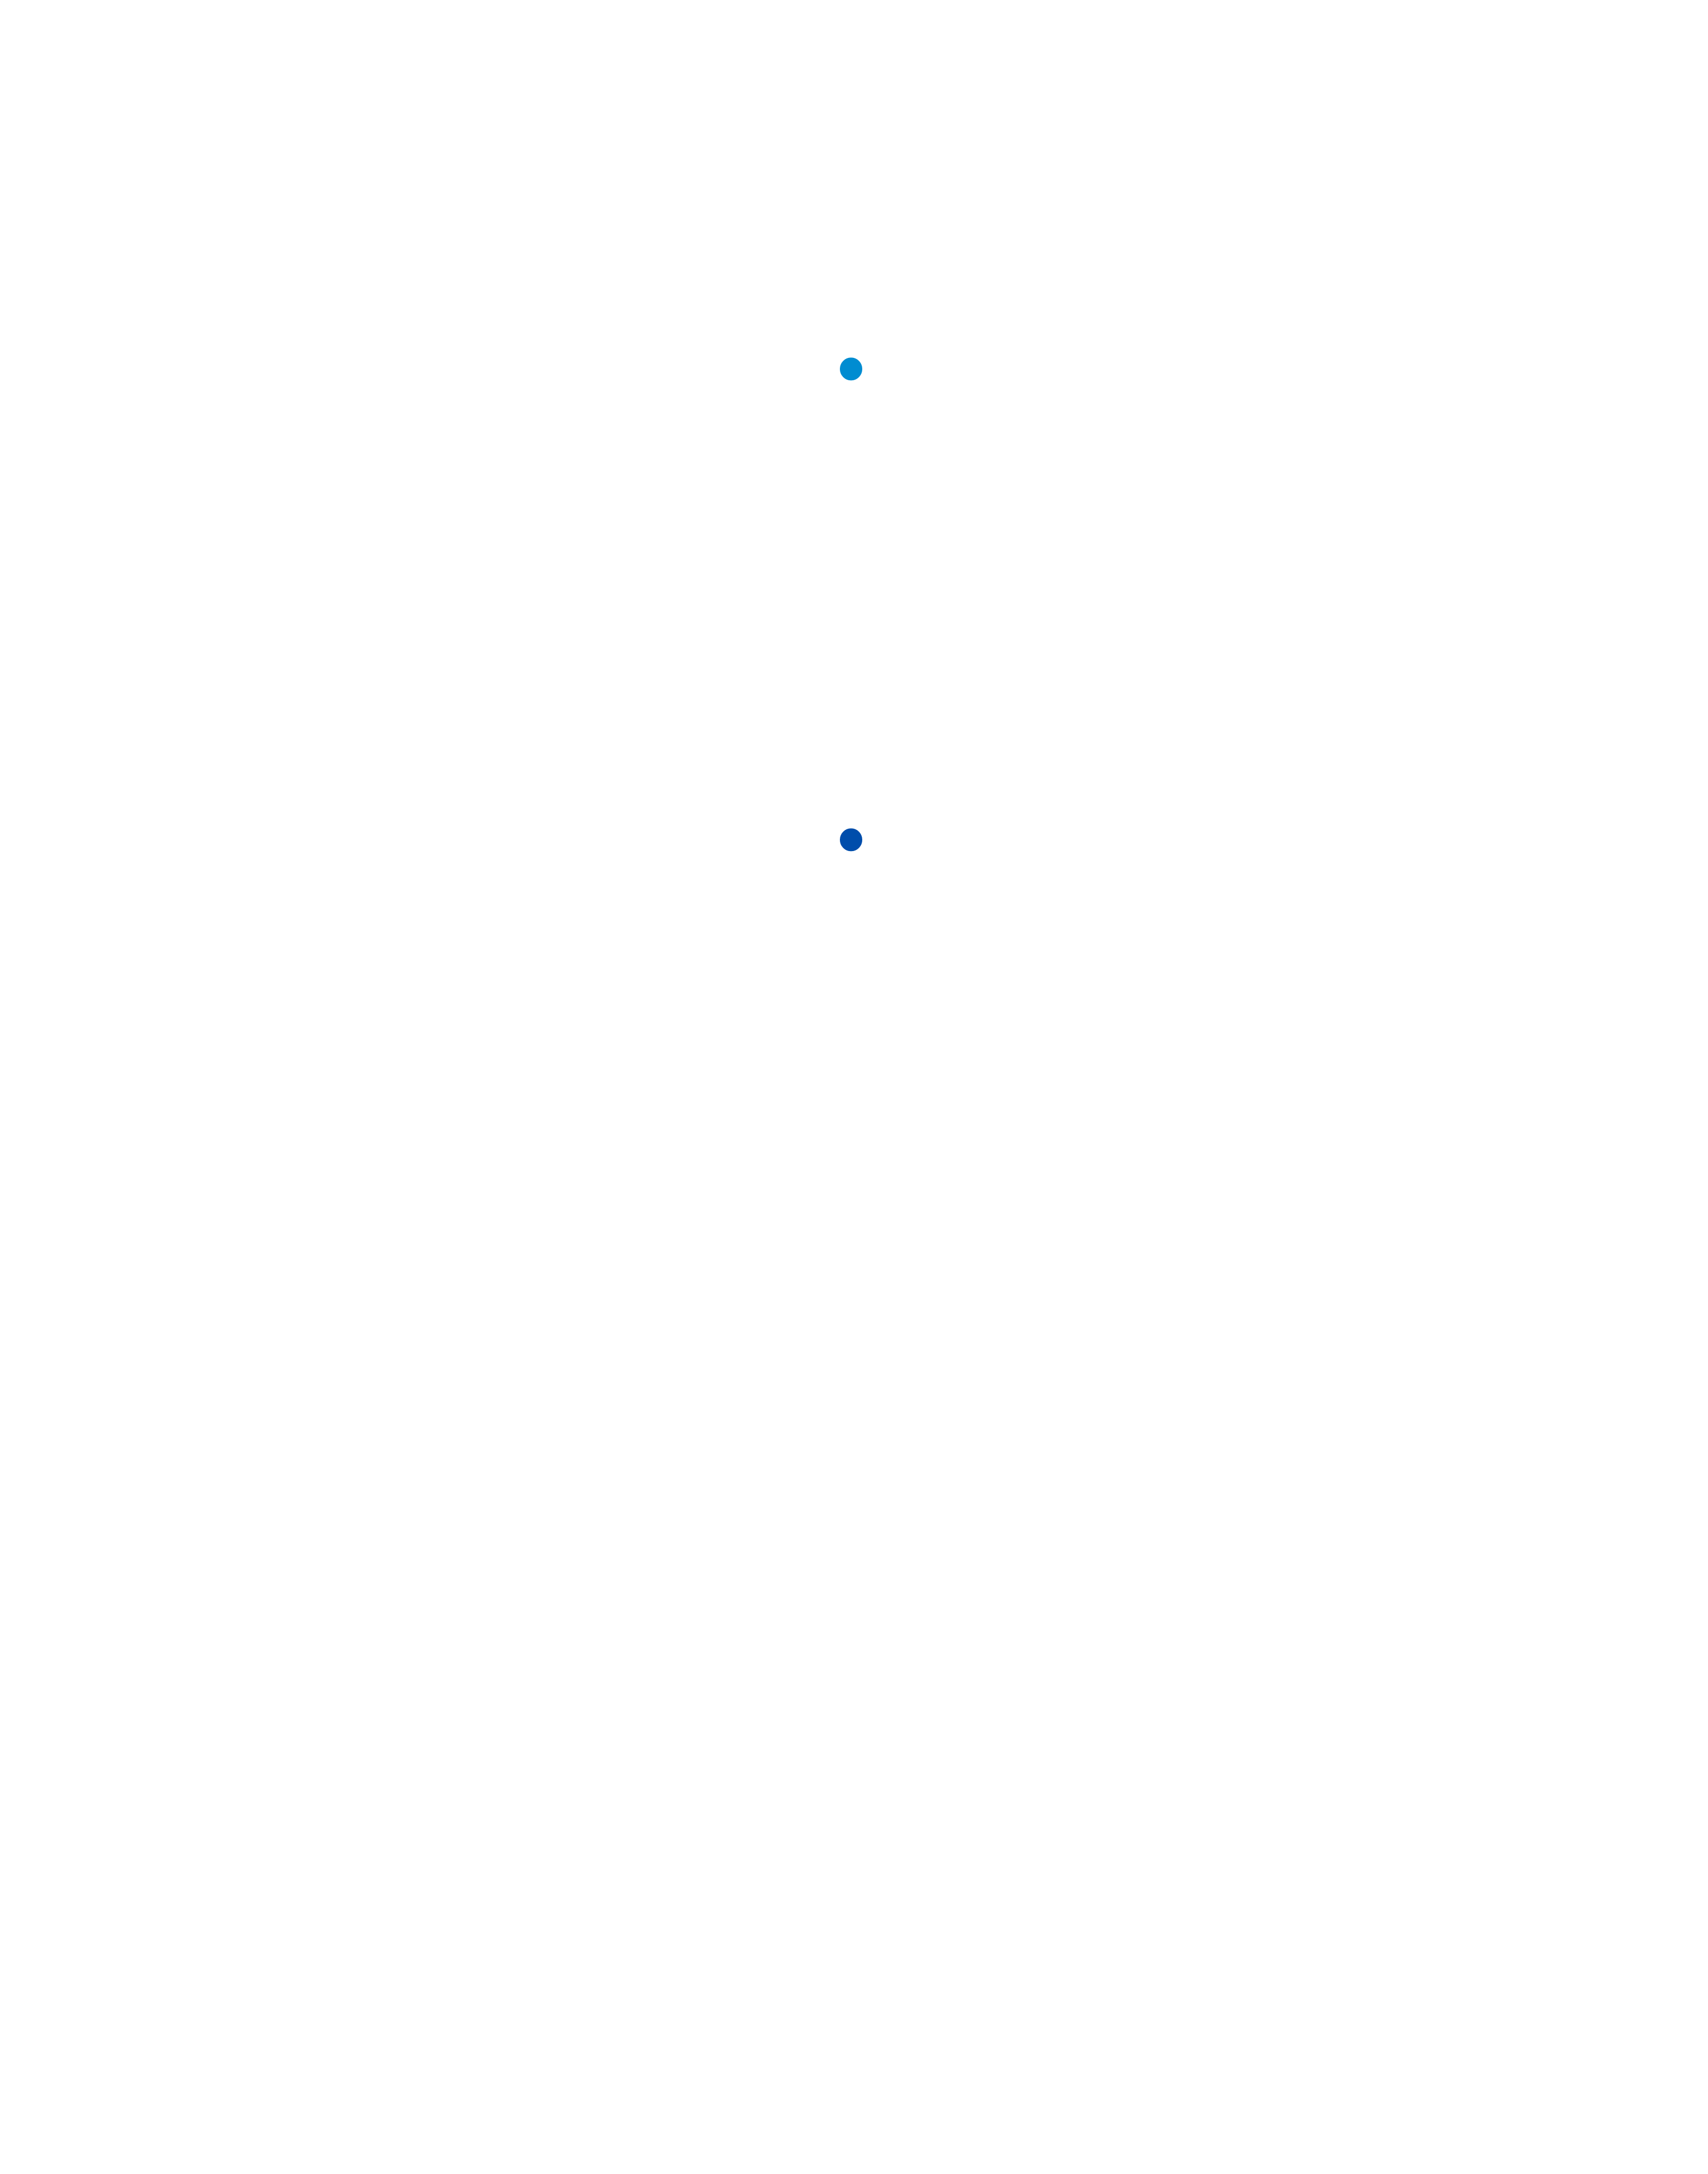 A timeline graphic showing key milestones in Merici College's academic transition over the past 8 years.